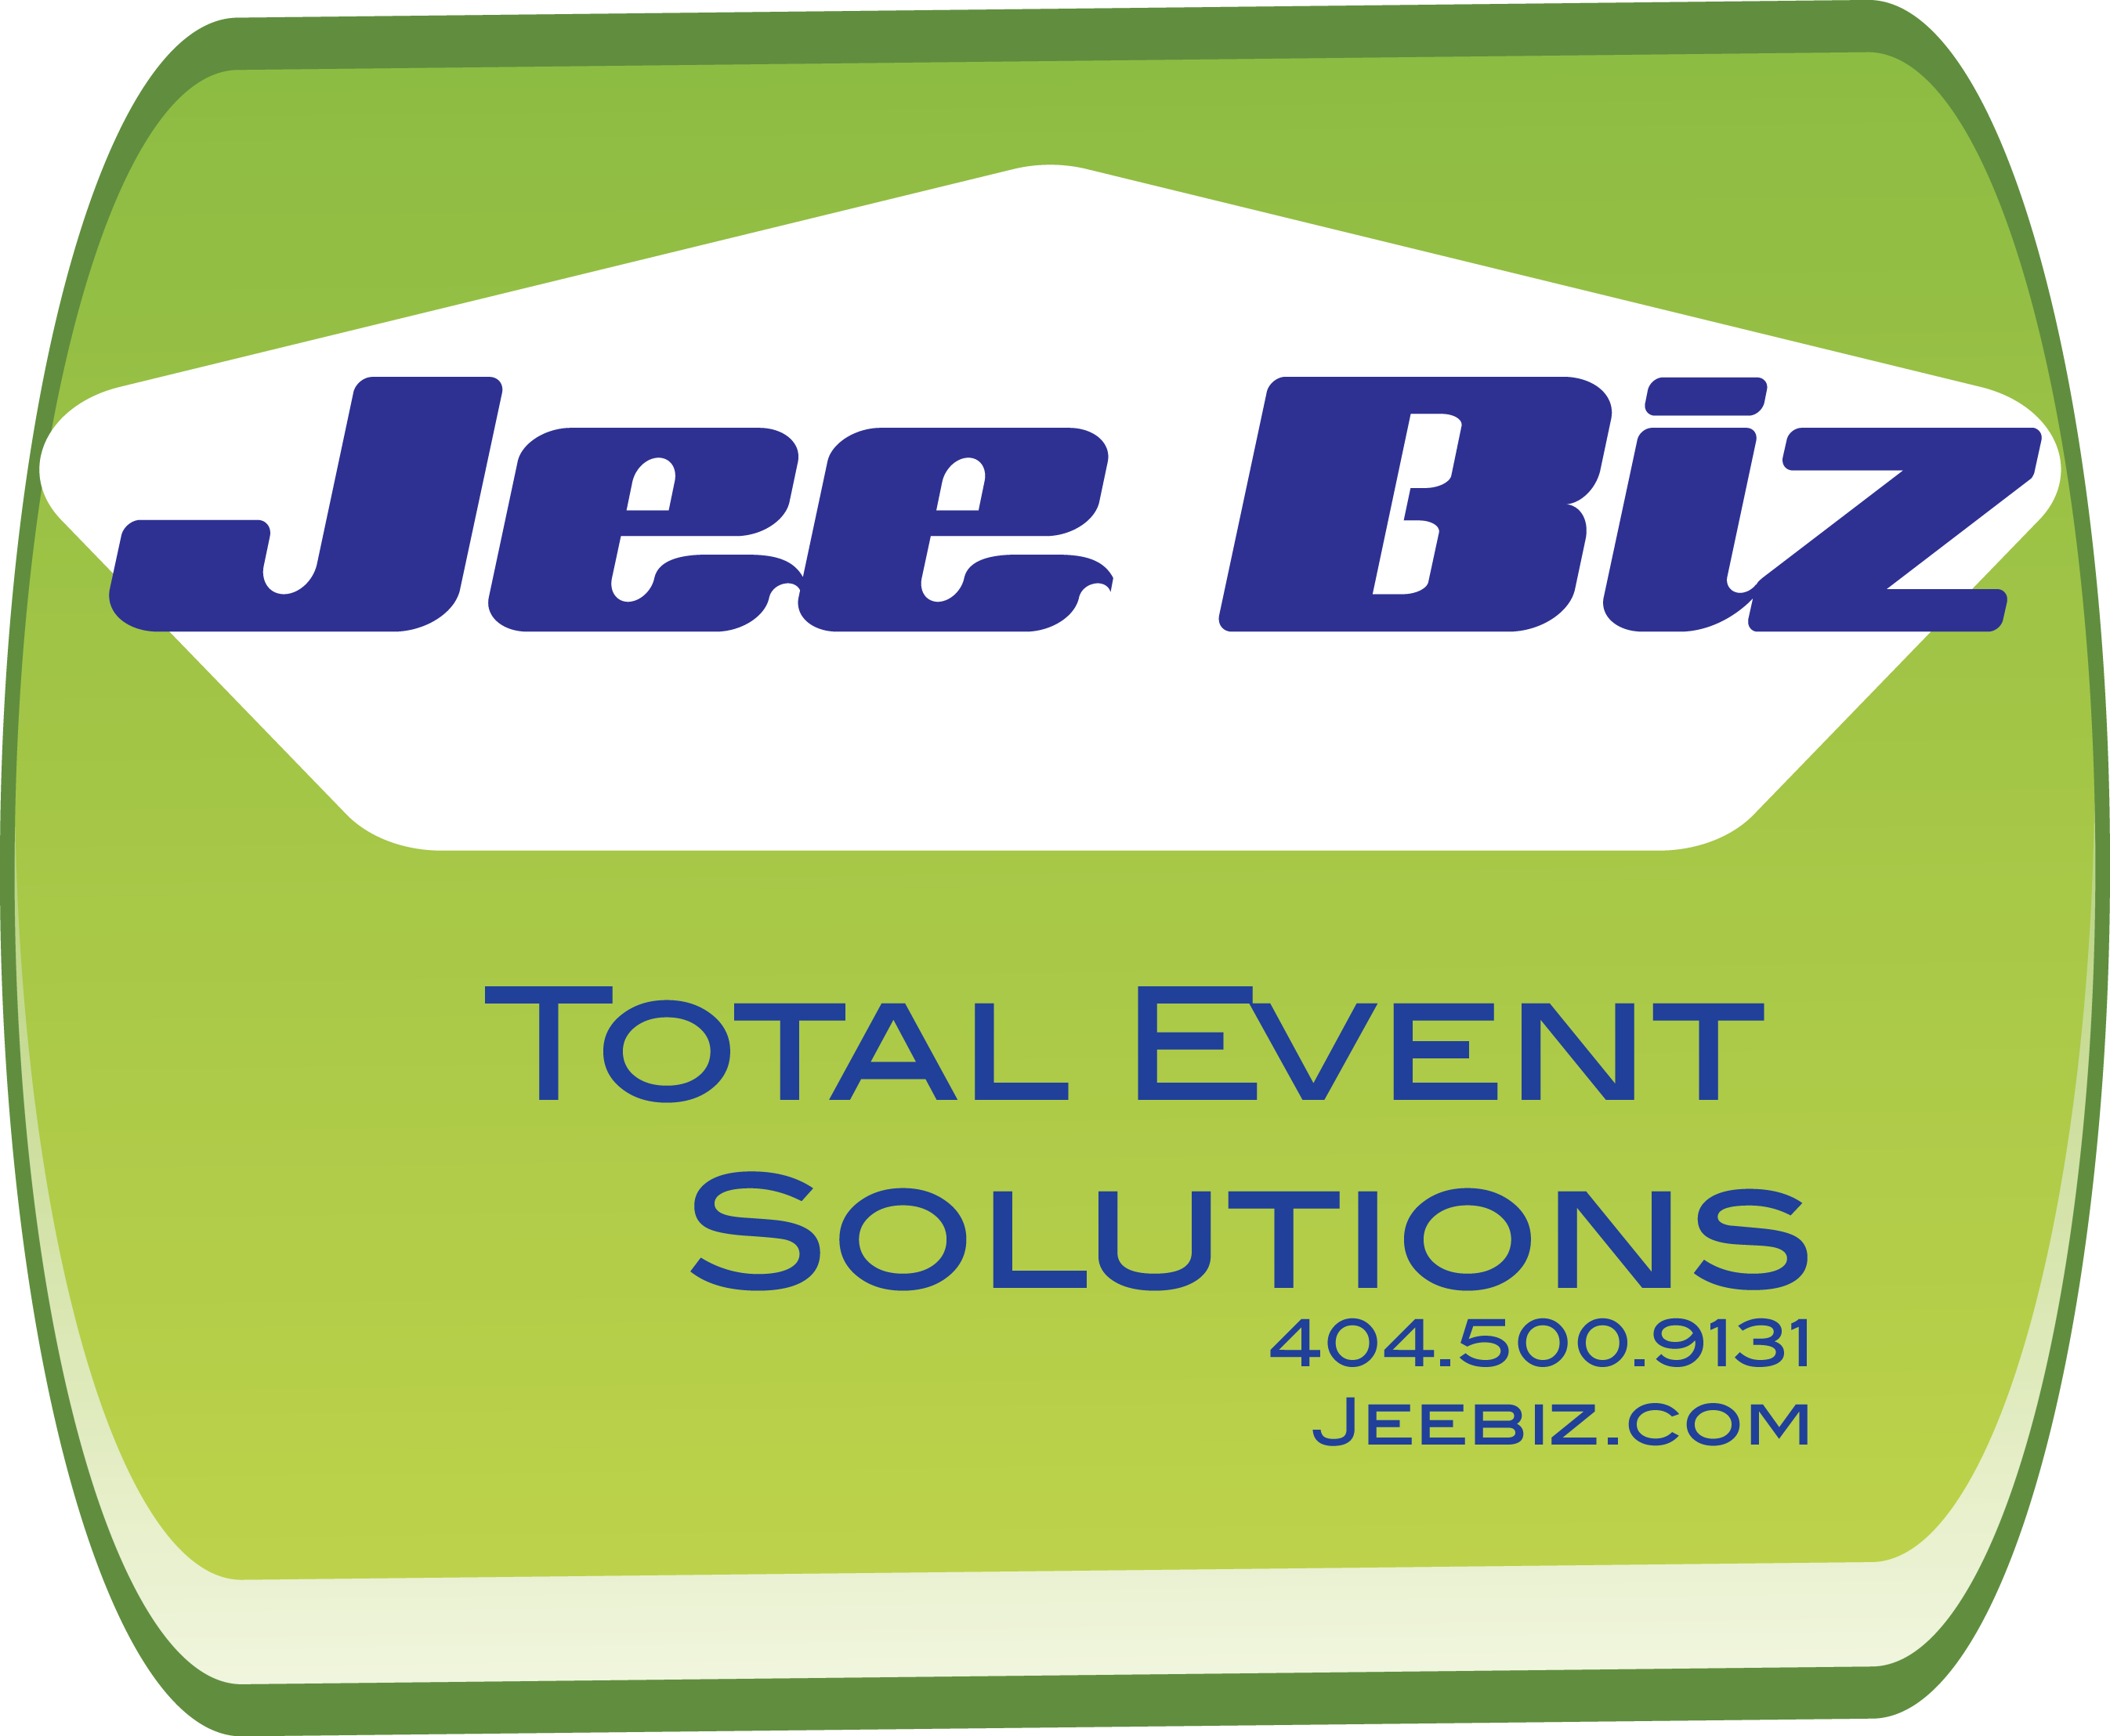 JEE BIZ TOTAL EVENT SOLUTIONS Logo